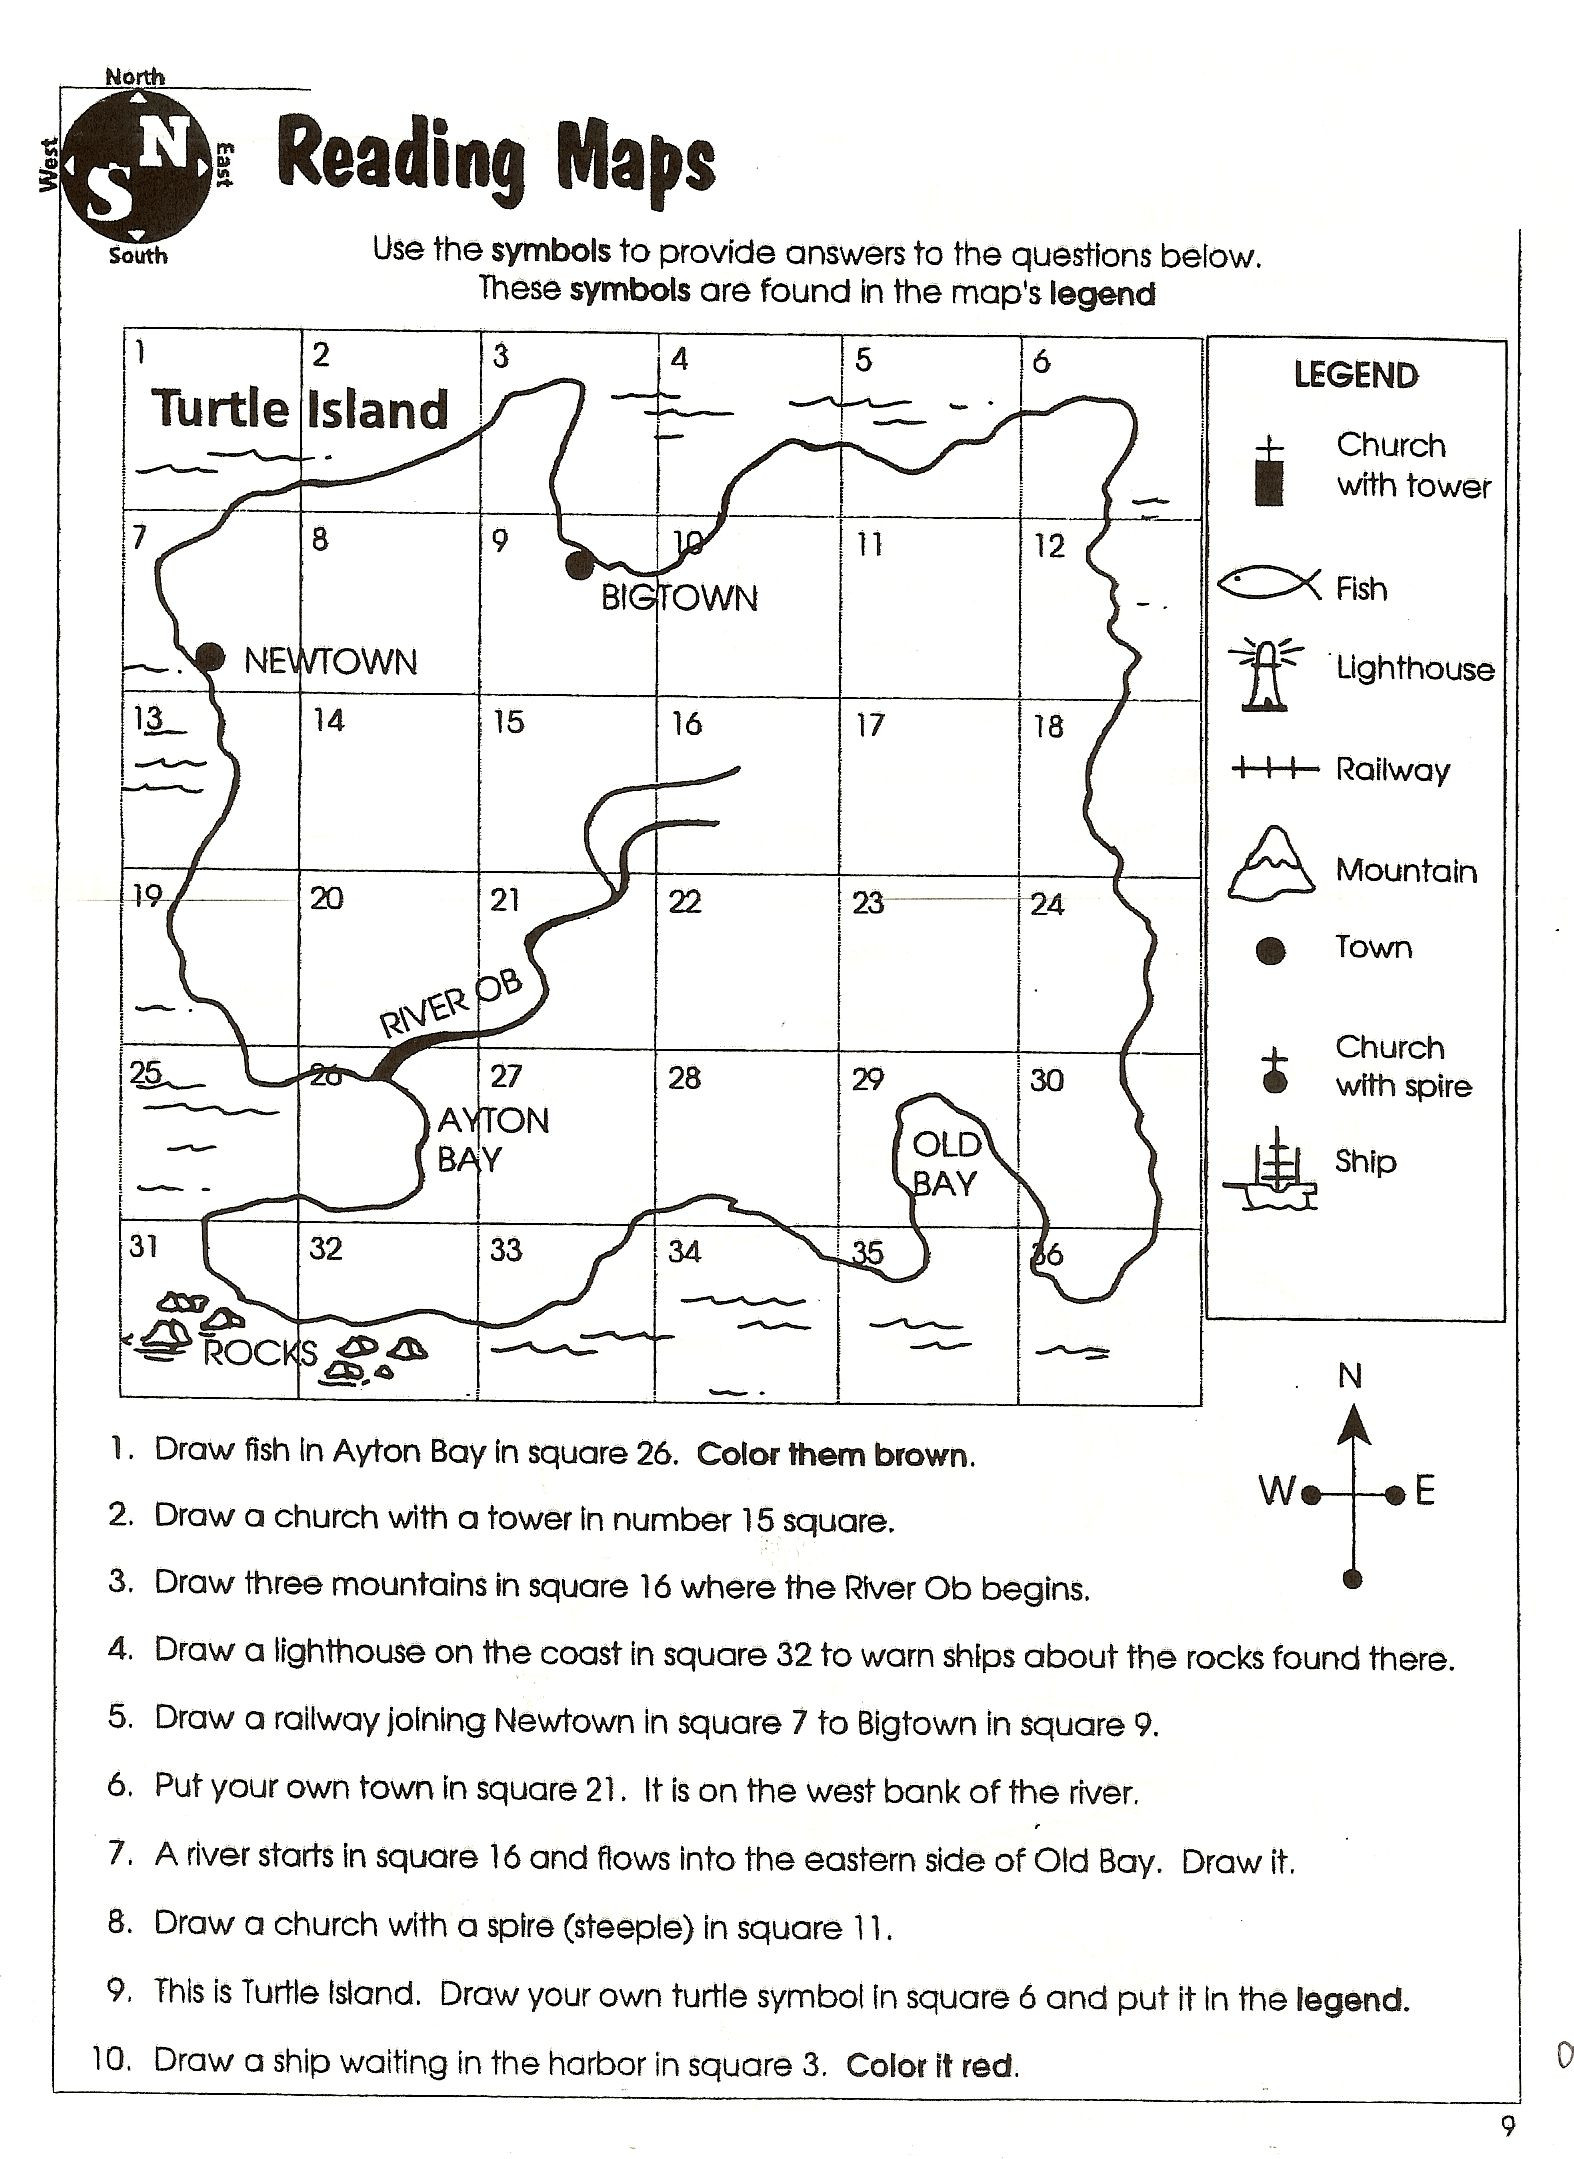 Map Skills Worksheet 4th Grade social Stu S Skills